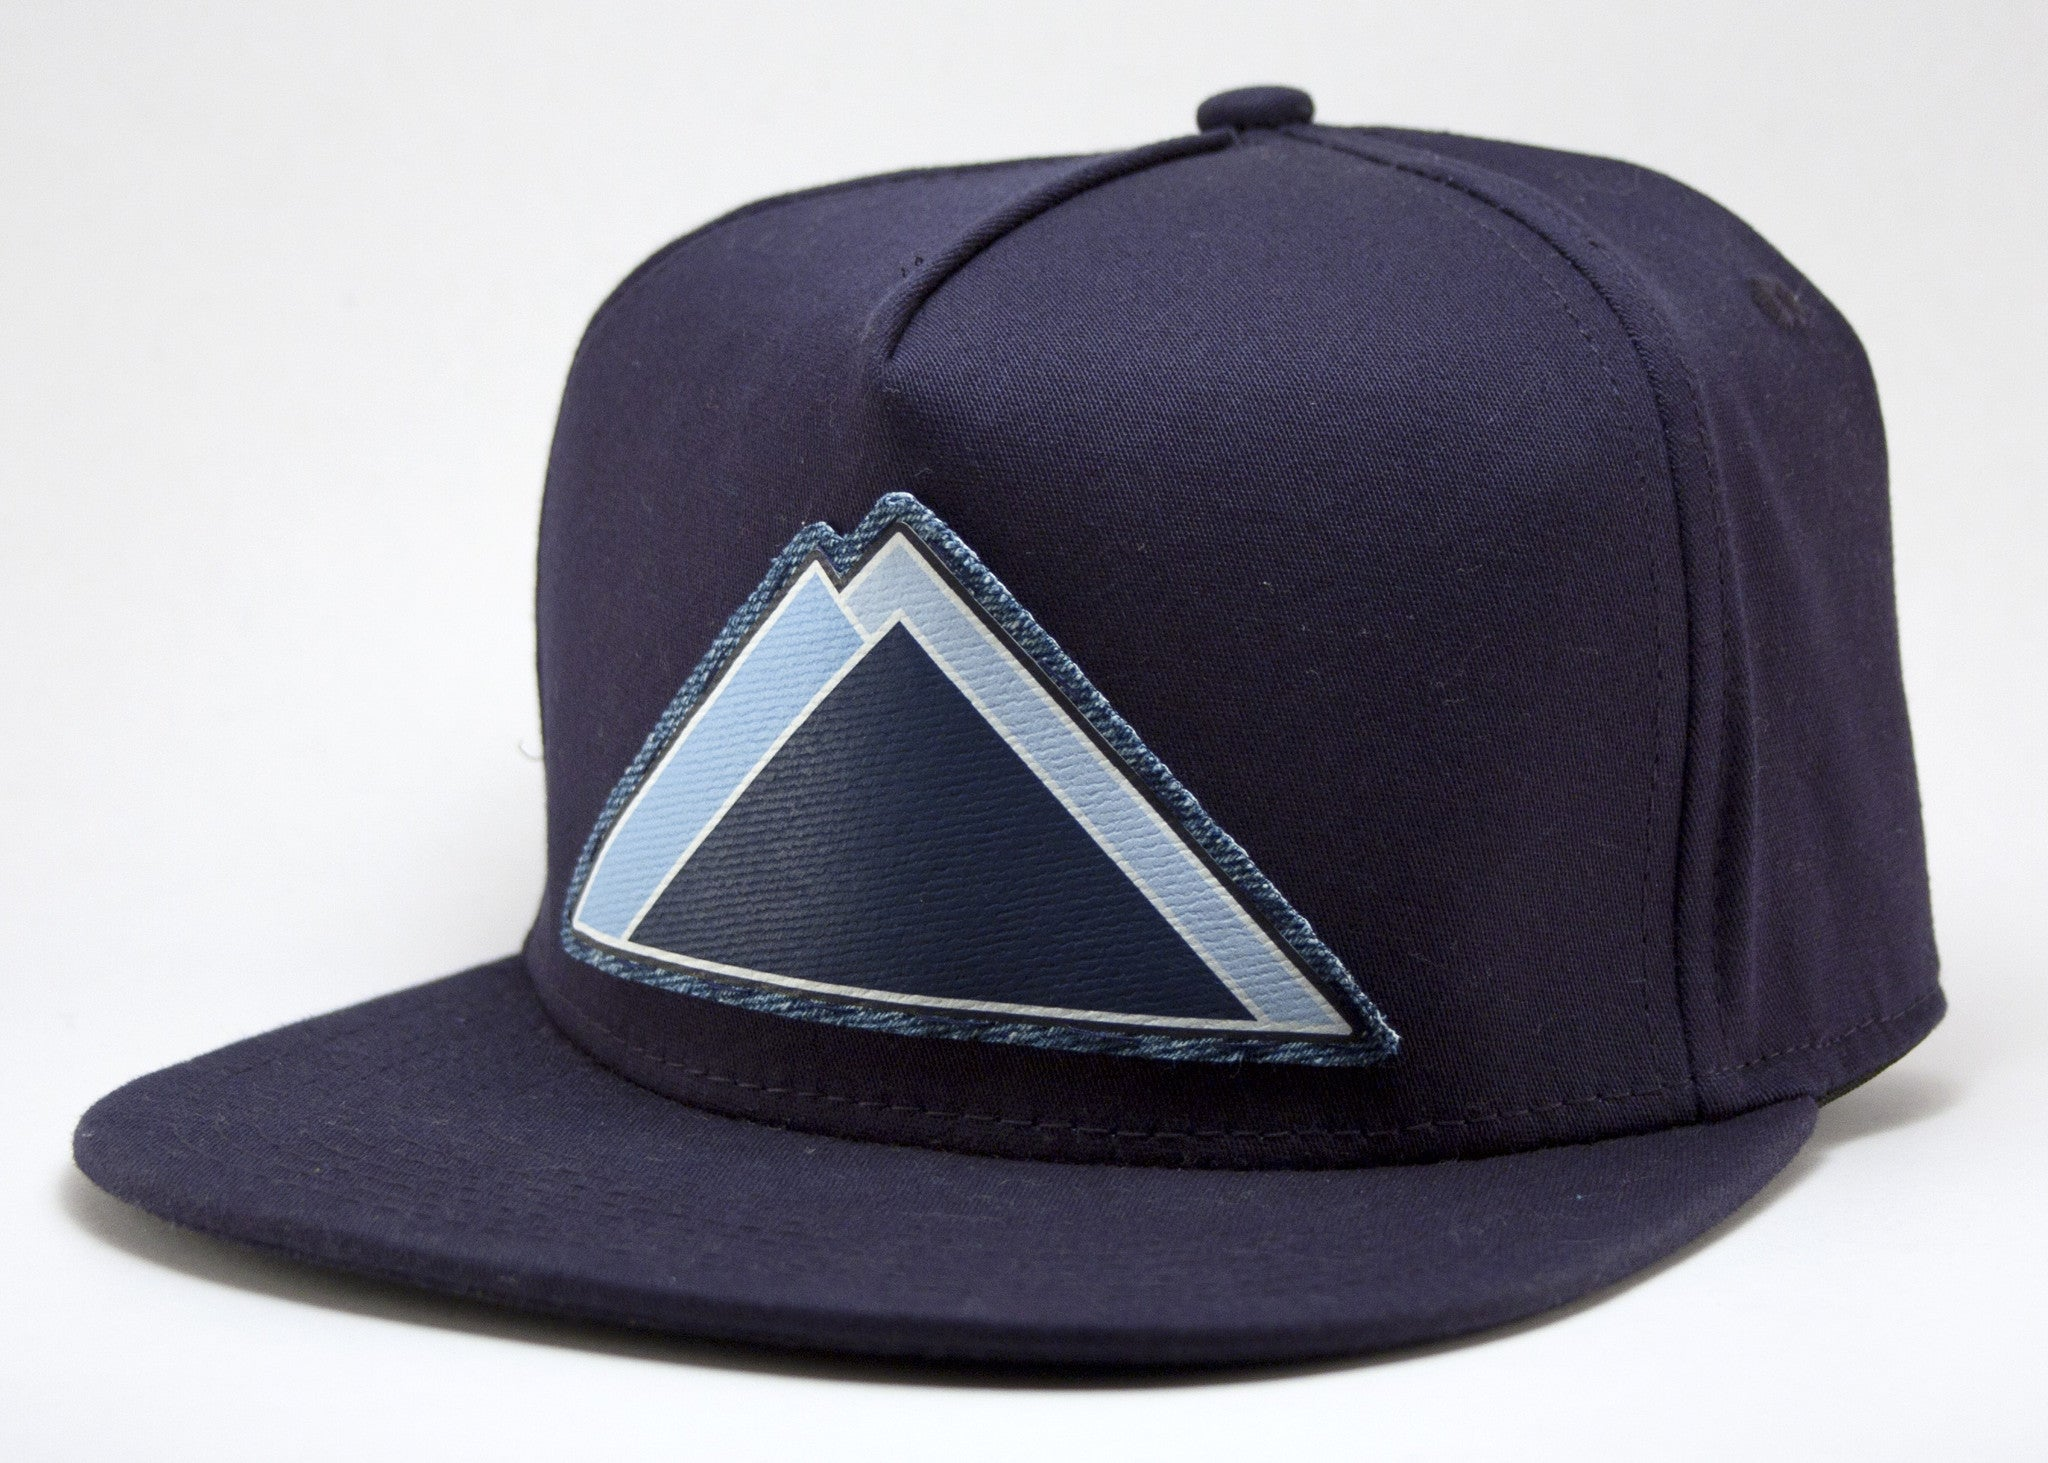 HTLK: Mountains - Hats